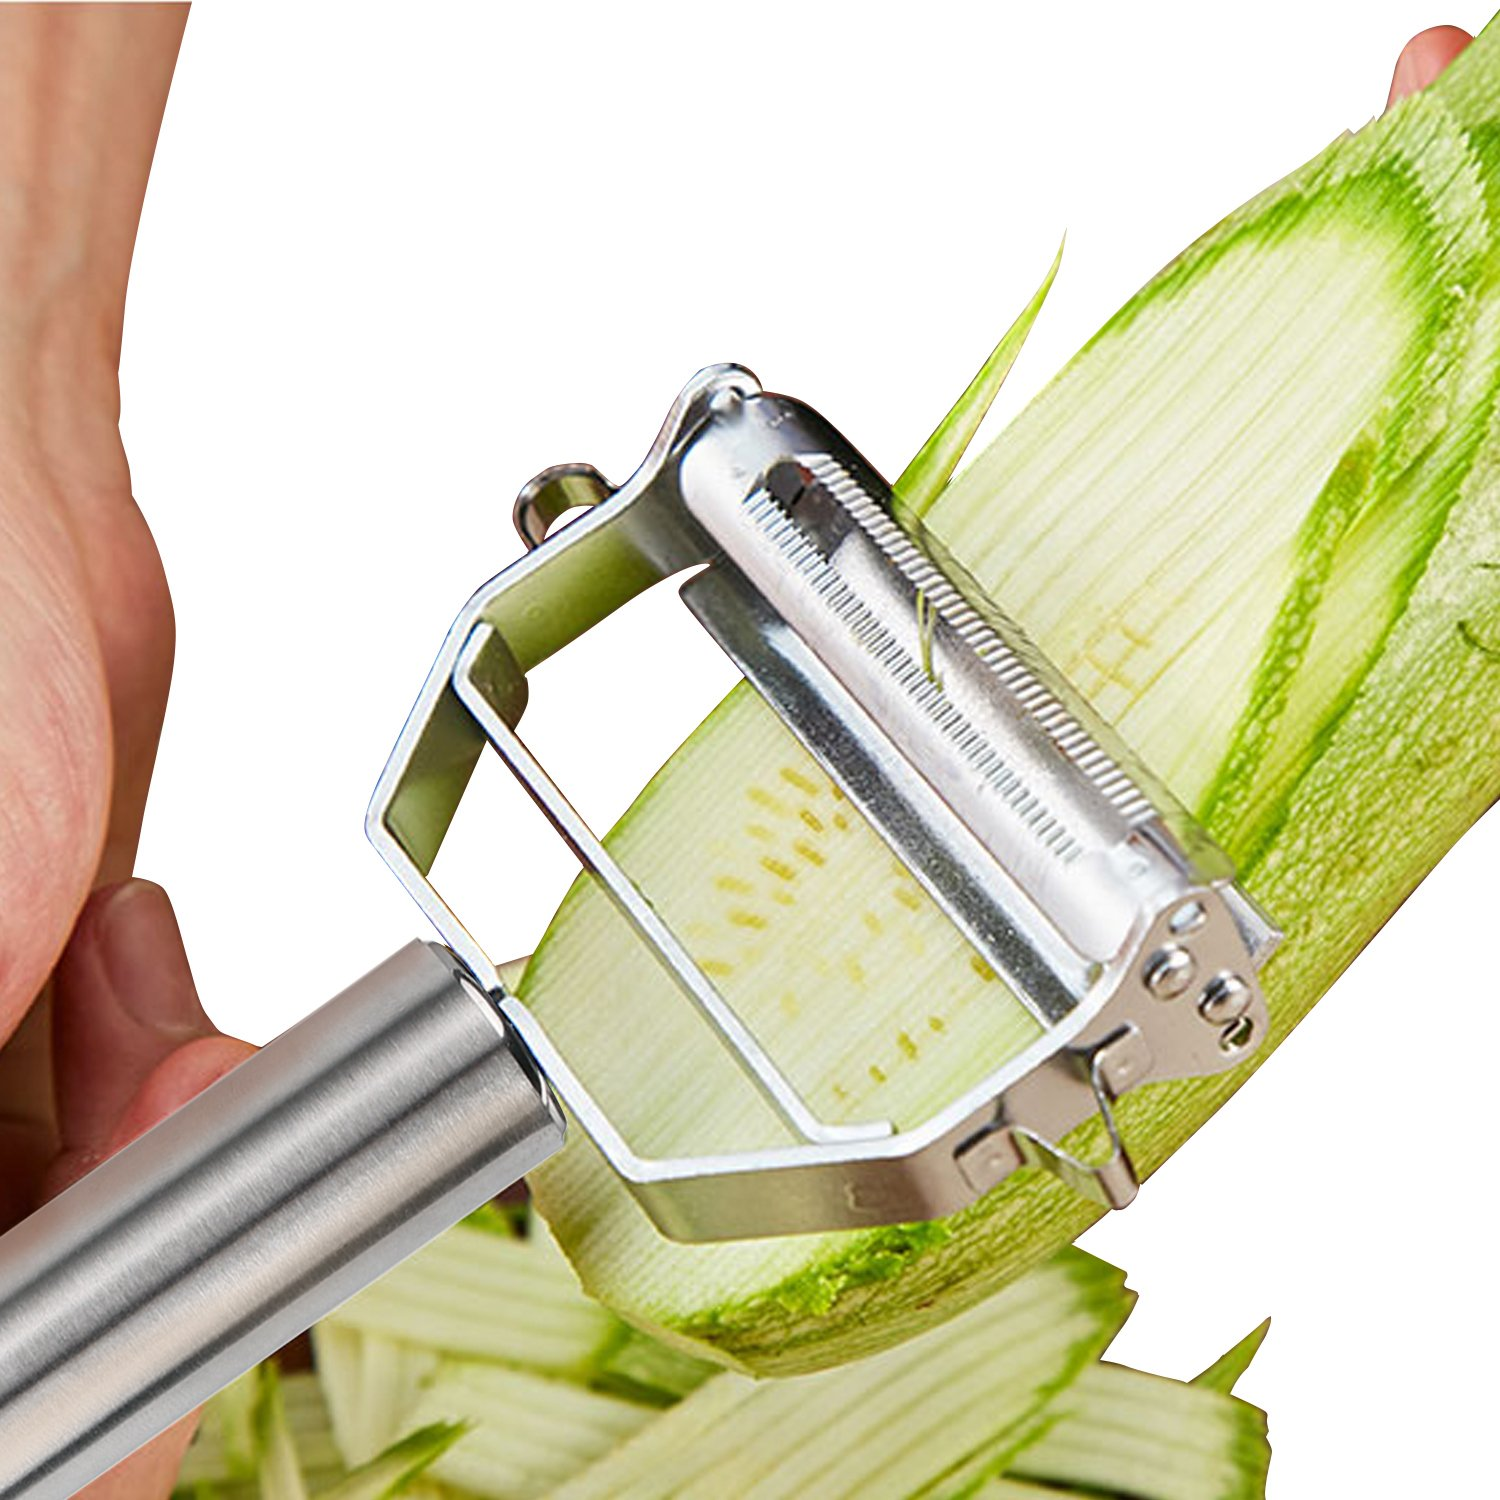 Professional Kitchen Stainless Steel Julienne Peeler With Brush